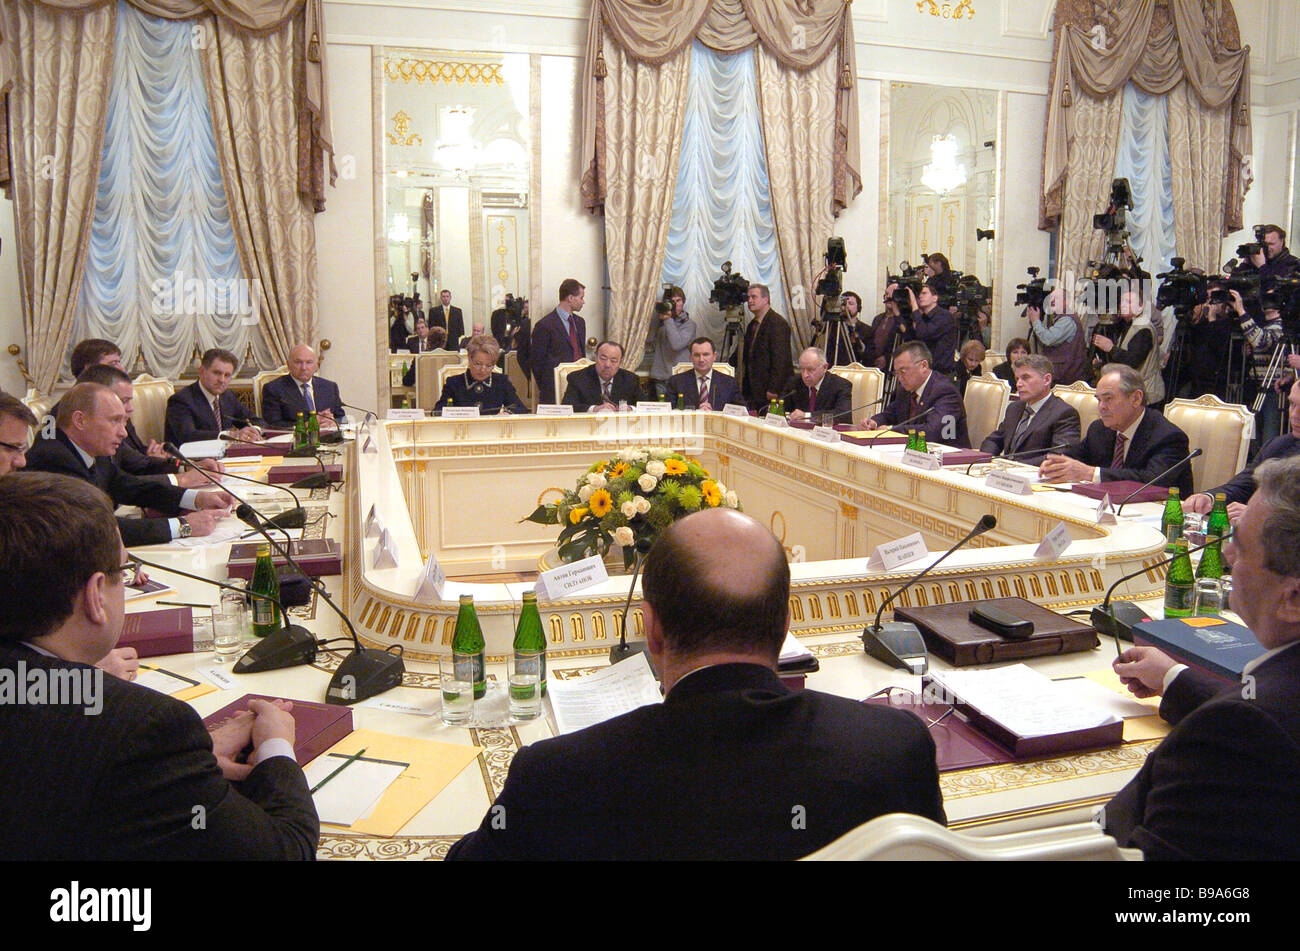 The Russian State Council Presidium meets in Kazan the capital of Tatarstan - Stock Image